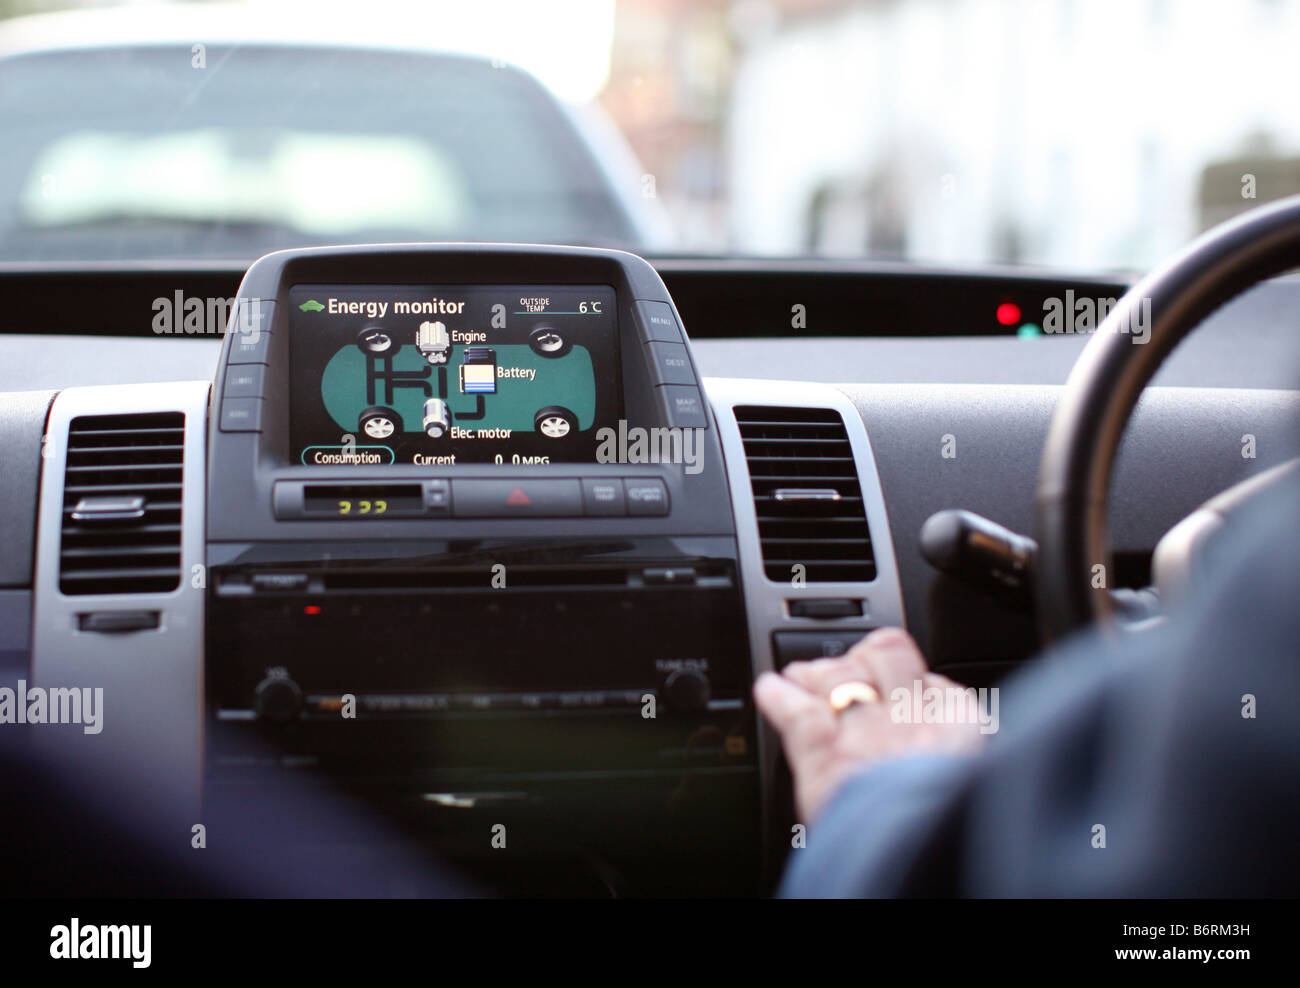 Energy monitor in Toyota Prius petrol electric hybrid car - Stock Image